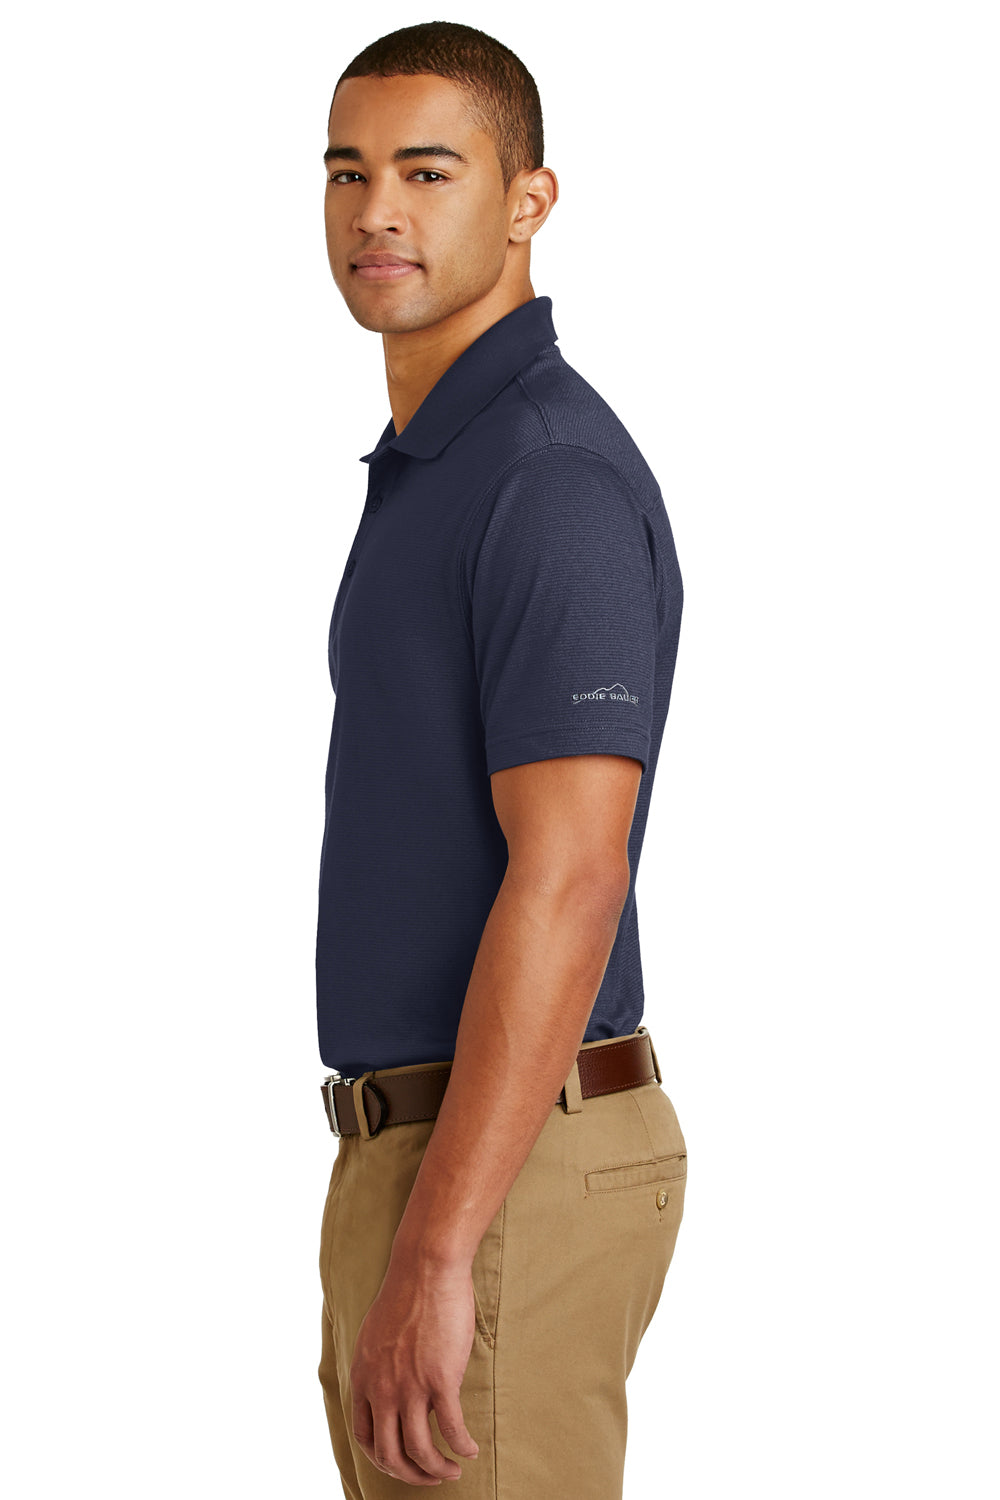 Eddie Bauer EB102 Mens UPF 30+ Performance Short Sleeve Polo Shirt Navy Blue Side